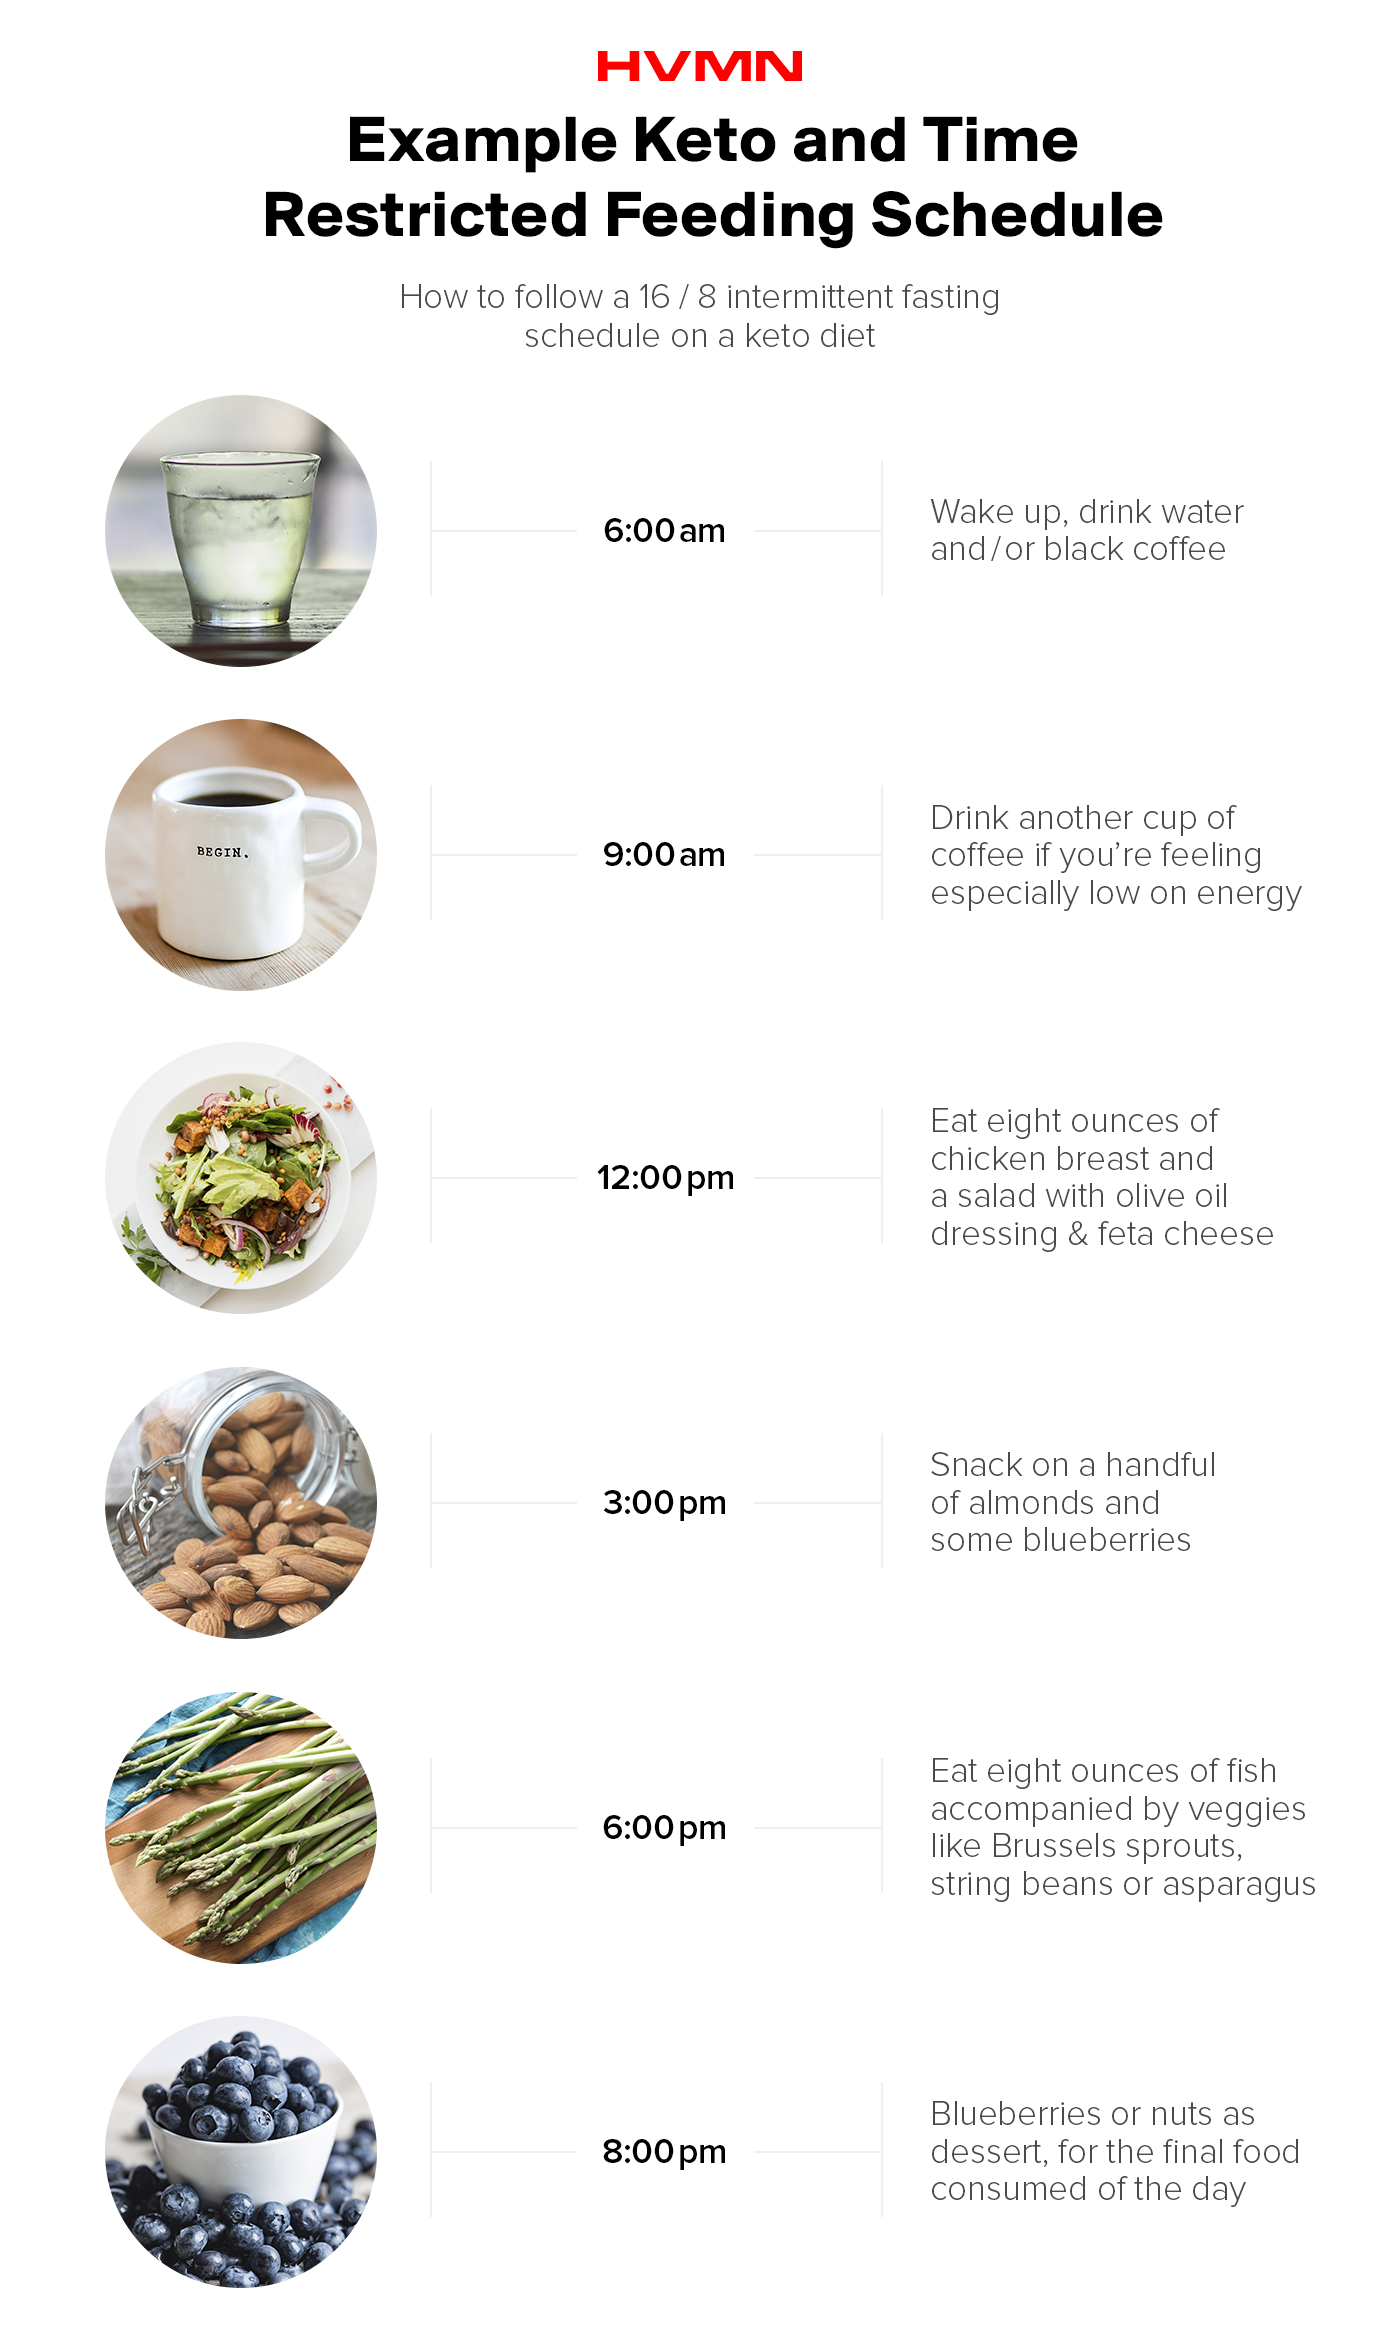 A timeline of keto and intermittent fasting; images of water, coffee, a salad, almonds, asparagus and blueberries associated with when to eat them